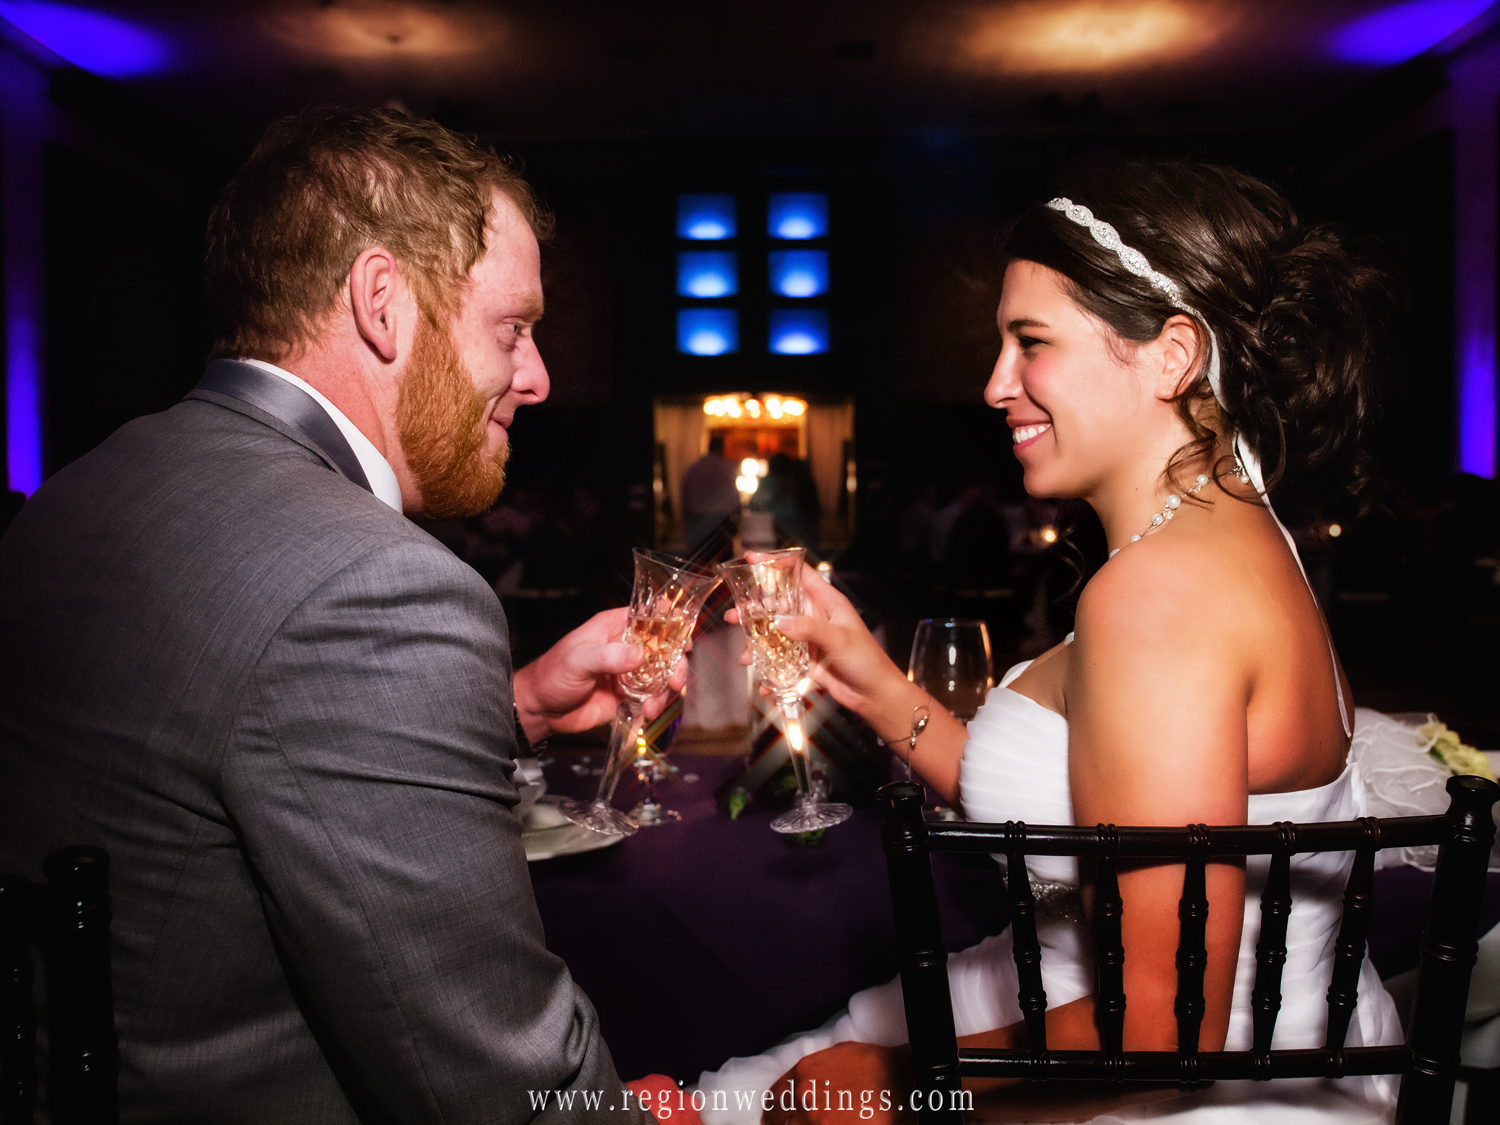 Bride and groom toast their glasses together during their reception at The Allure in Laporte.